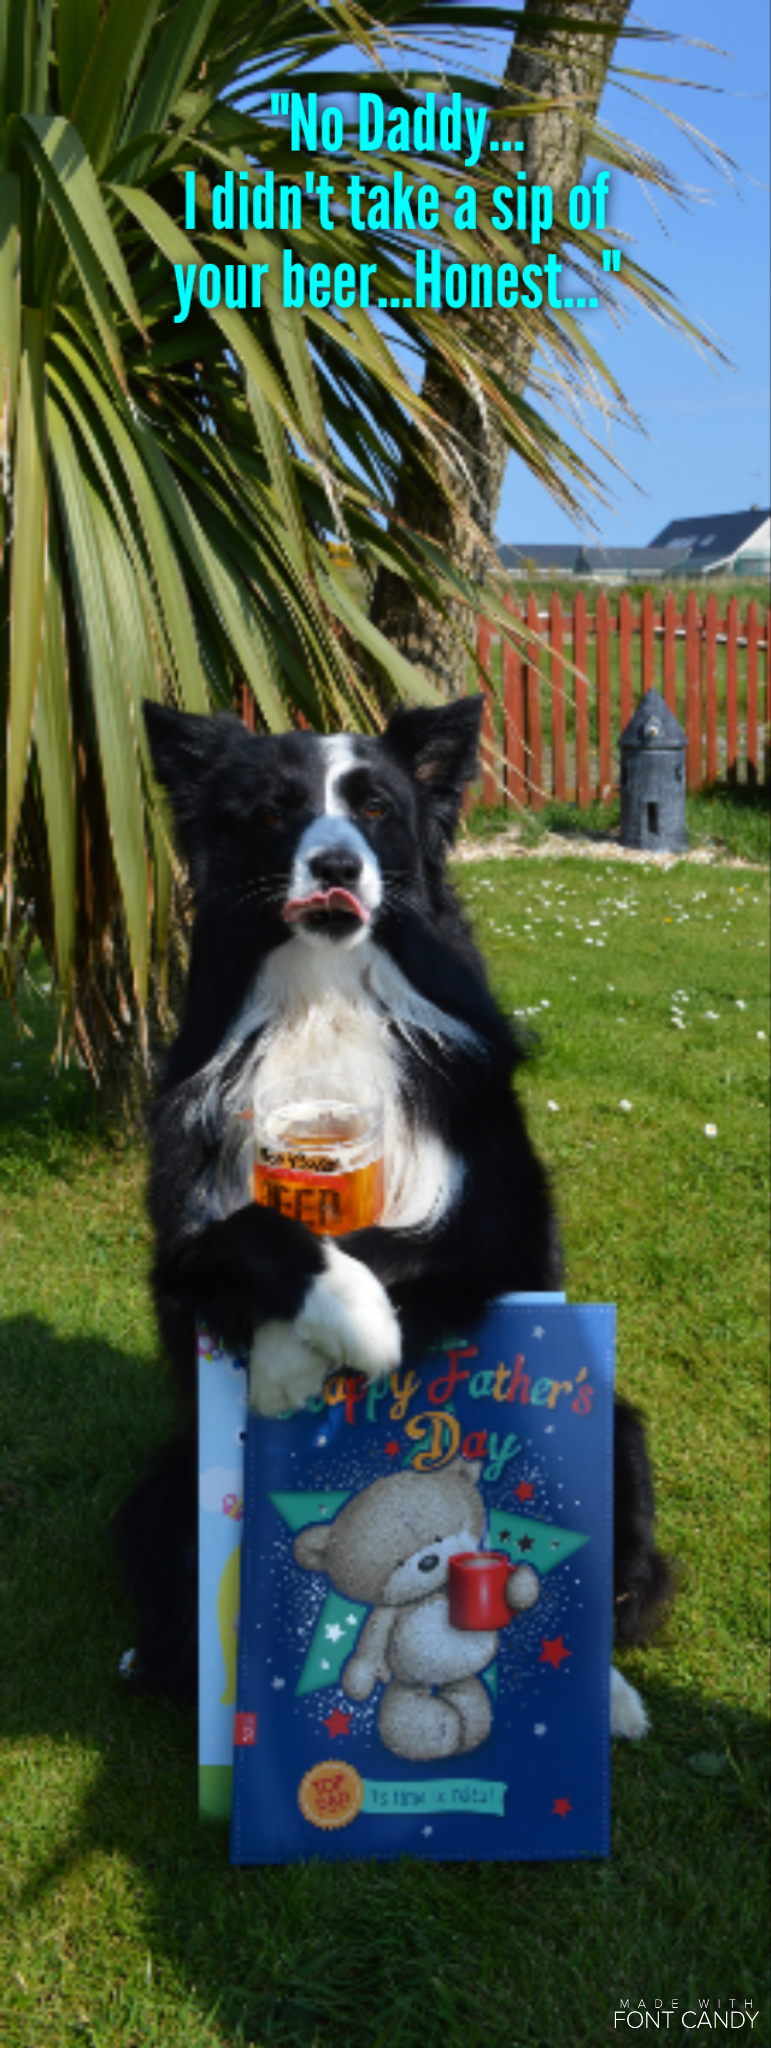 """""""No Daddy...I didn't take a sip of your Beer...Honest..."""" says Asha the border collie with a expression on her face that tells a different story..."""